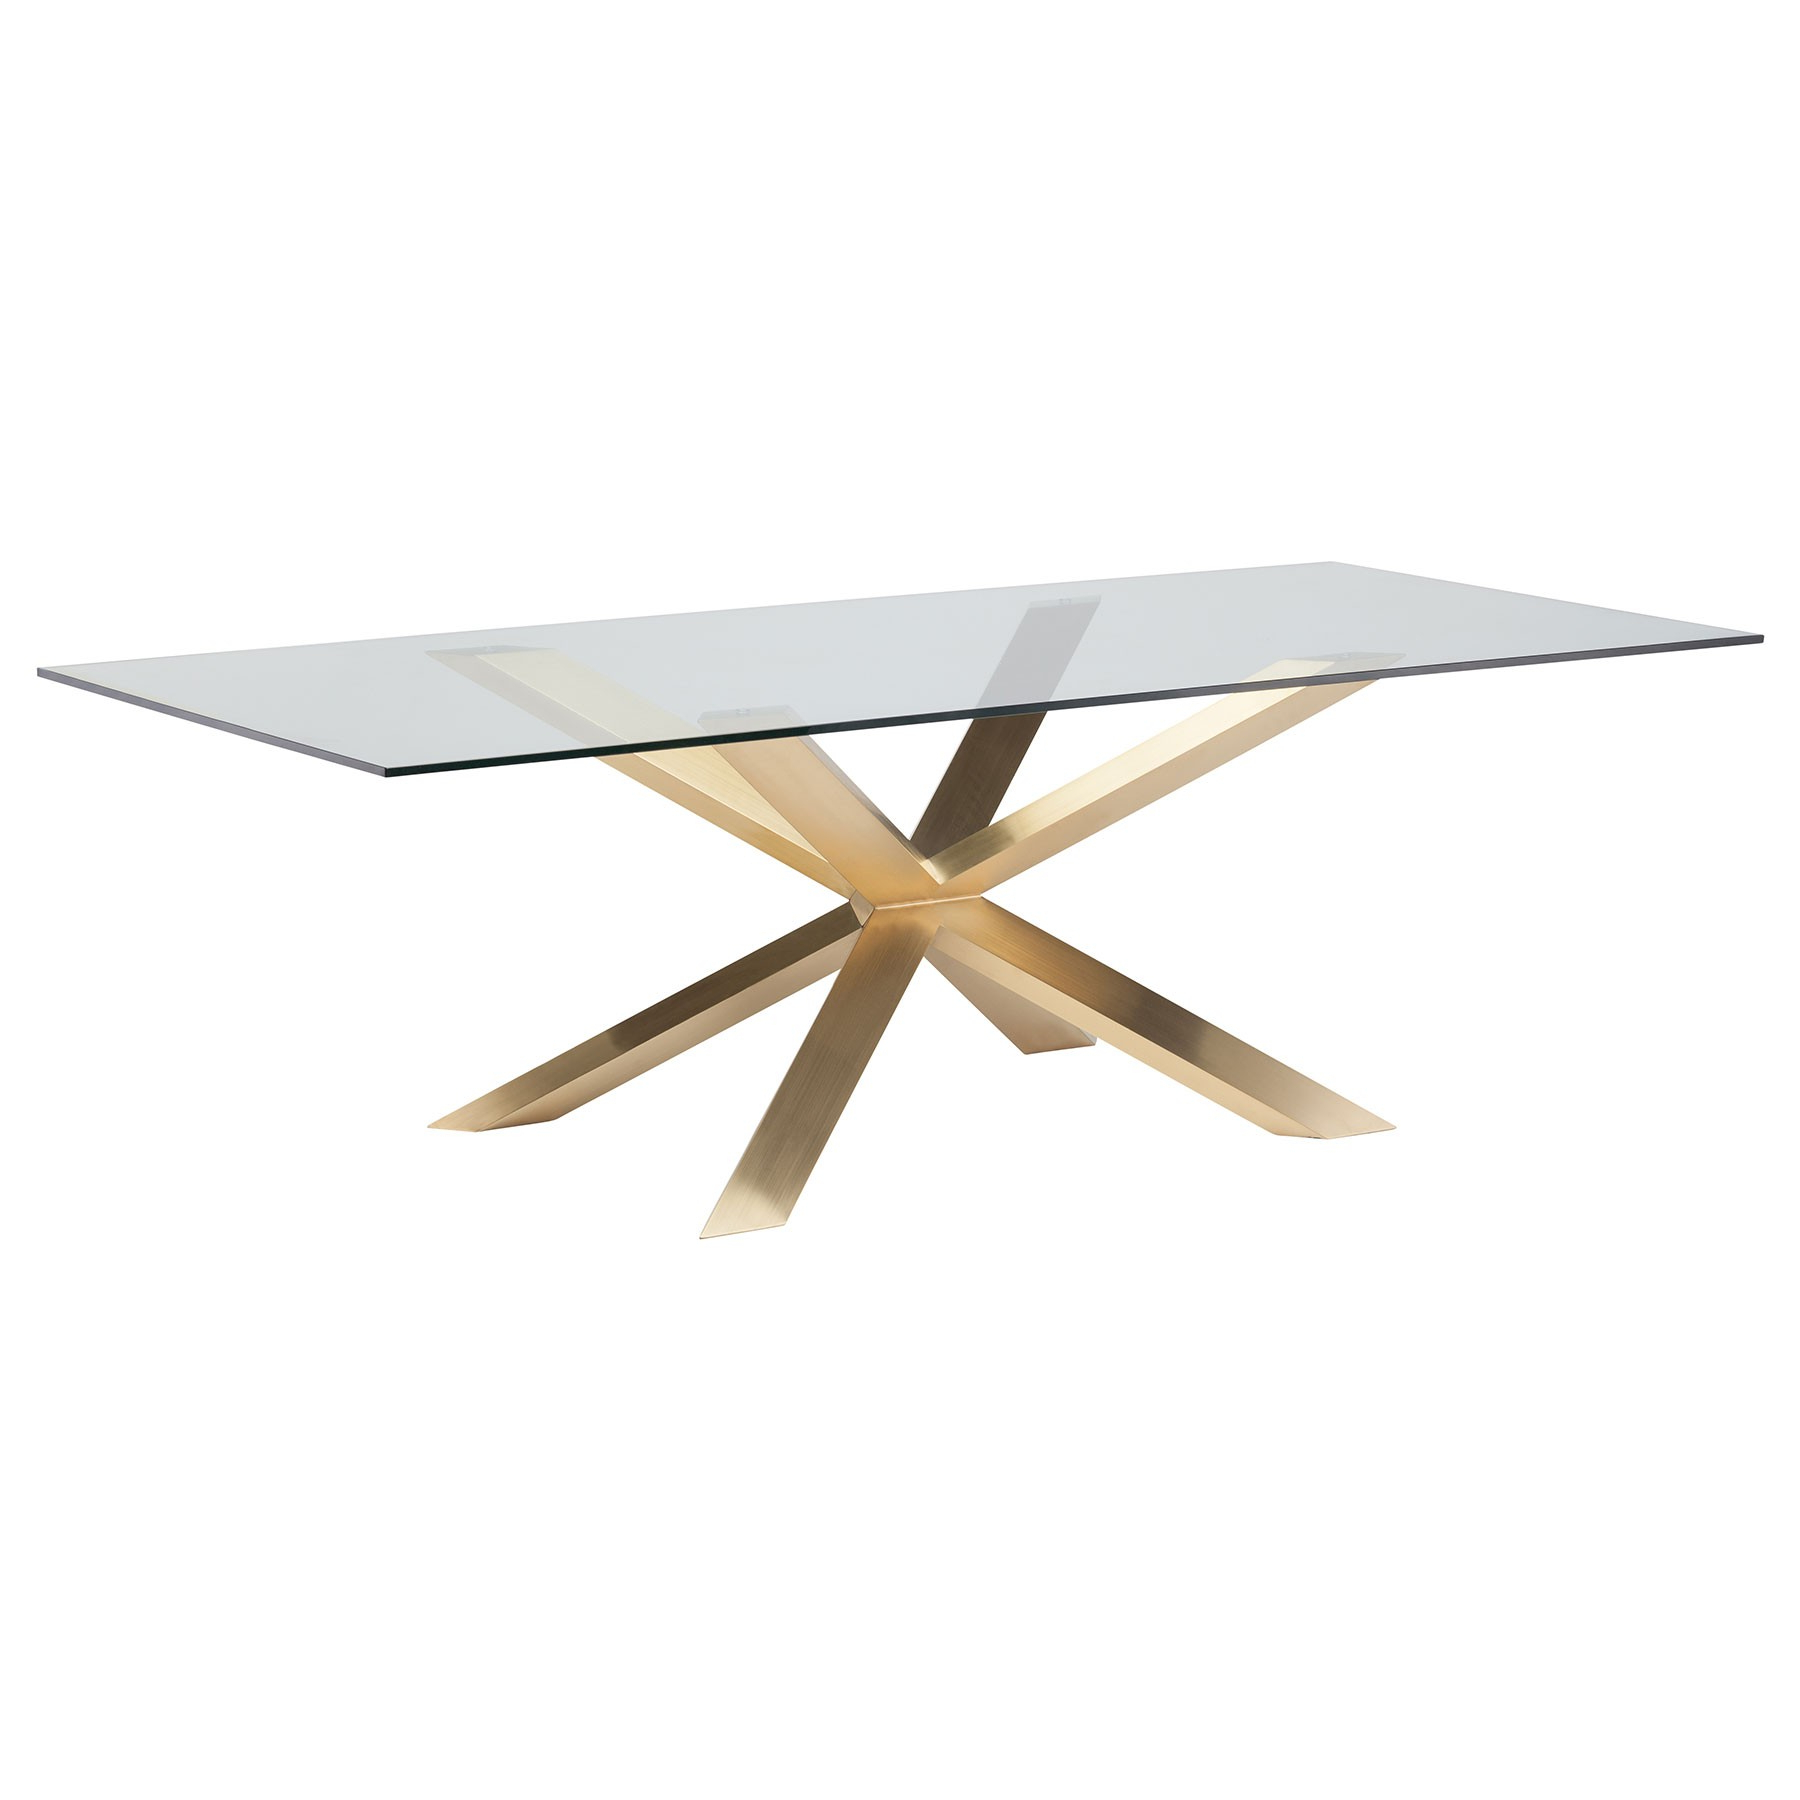 Most Recent Couture Dining Table – Glass / Gold With Regard To Dining Tables With Brushed Gold Stainless Finish (View 3 of 25)